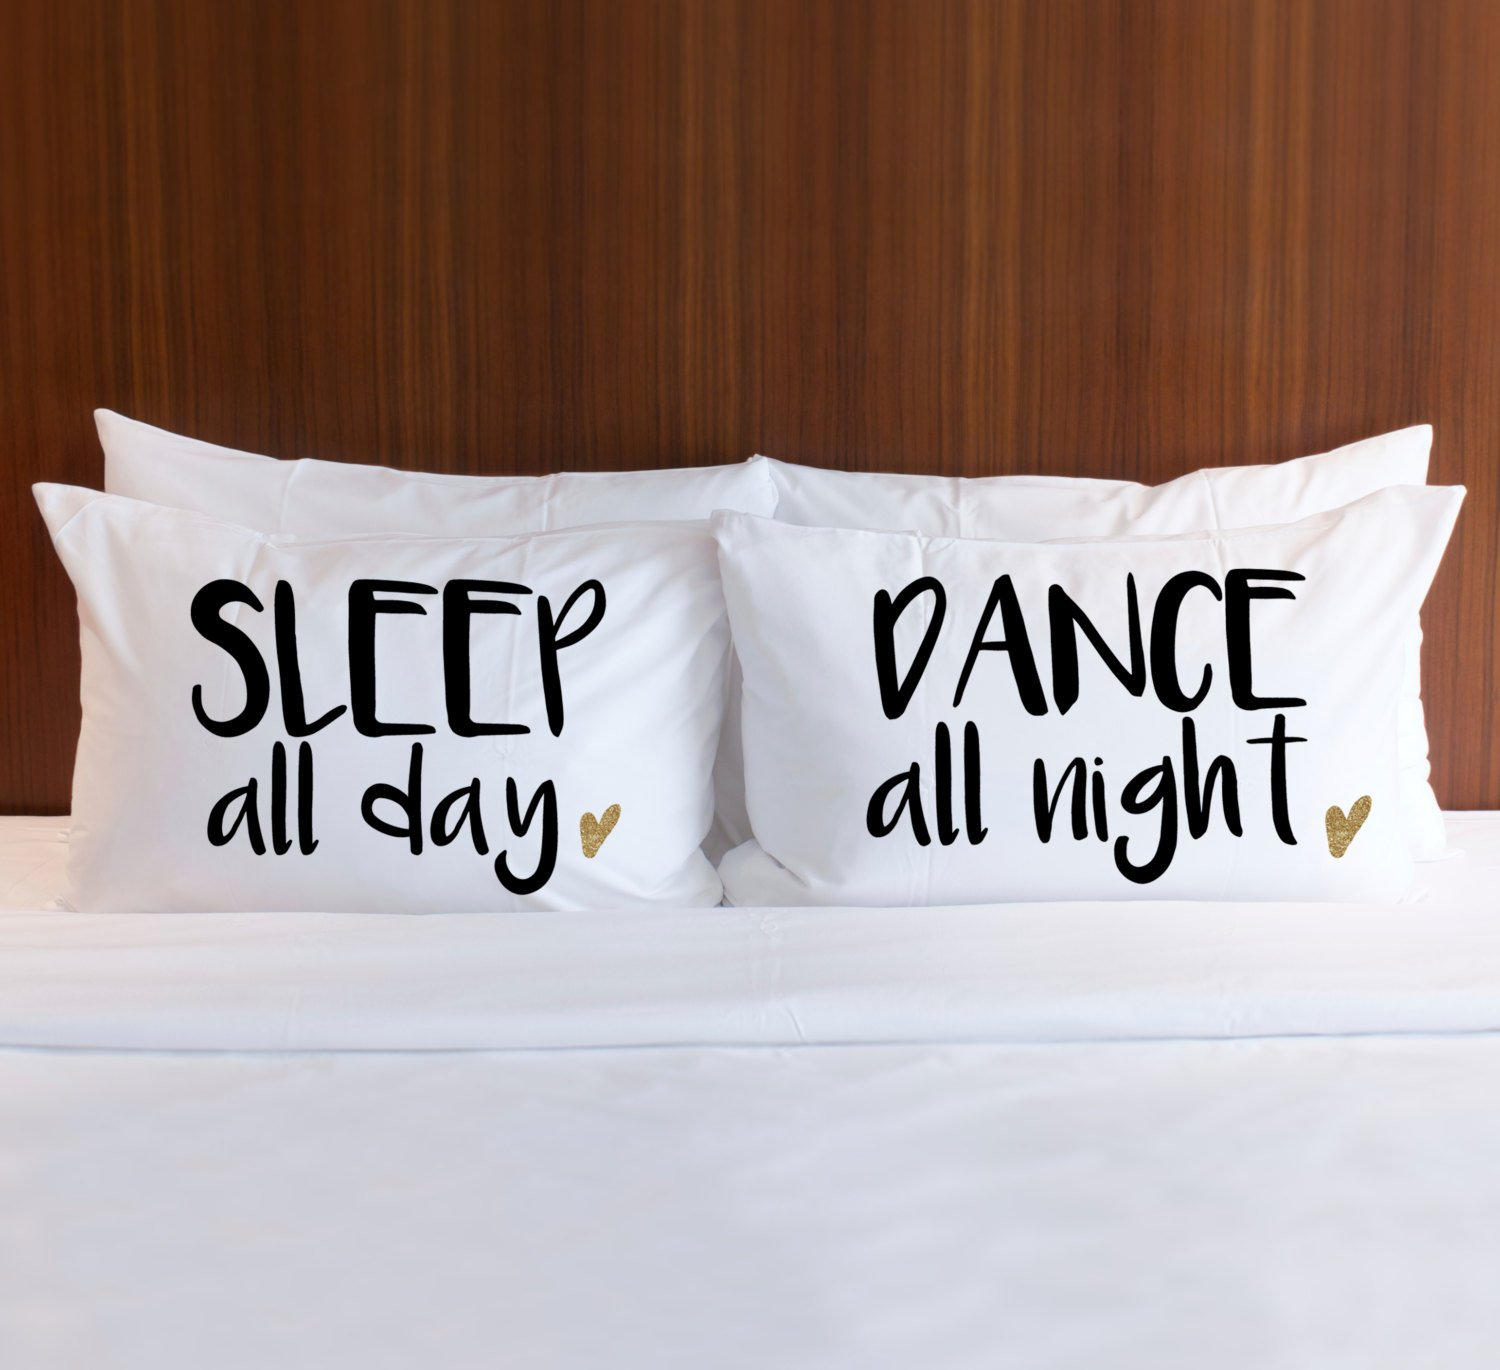 Susie85Electra Couple Pillowcases Romantic,Valentines Day Pillowcase, for Bedroom or Dorm Gift for Her Bed Pillows Sleep All Day Dance All Night Pillow Case Set Bedroom Home Decor